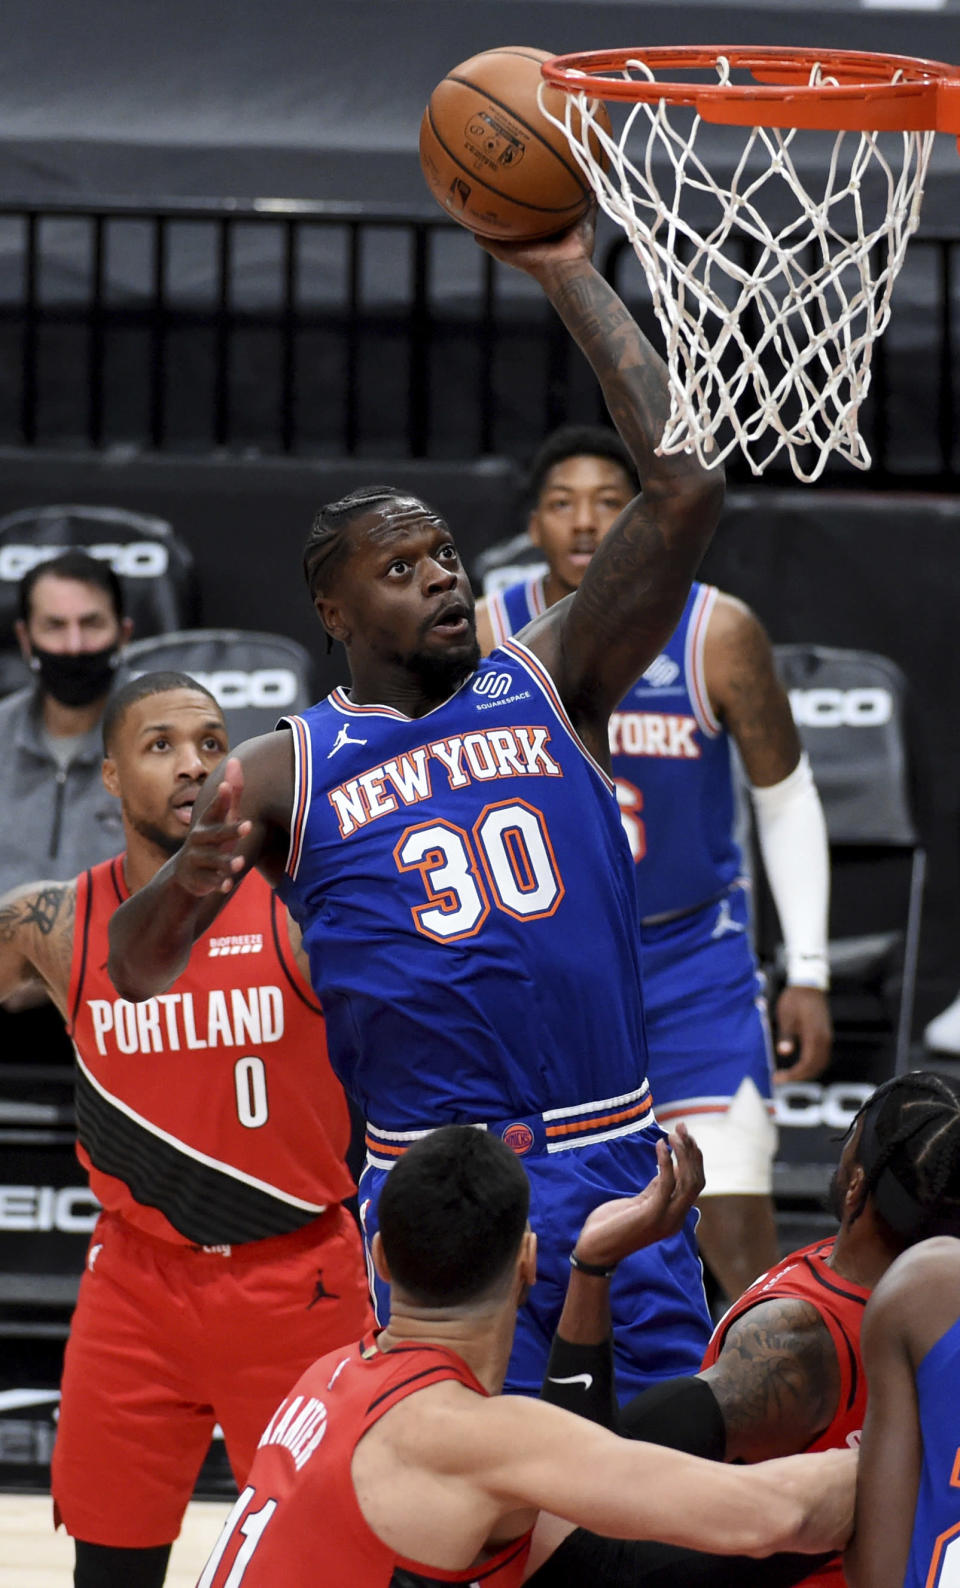 New York Knicks forward Julius Randle (30) drives to the basket on Portland Trail Blazers guard Damian Lillard, left, during the first quarter of an NBA basketball game in Portland, Ore., Sunday, Jan. 24, 2021. (AP Photo/Steve Dykes)